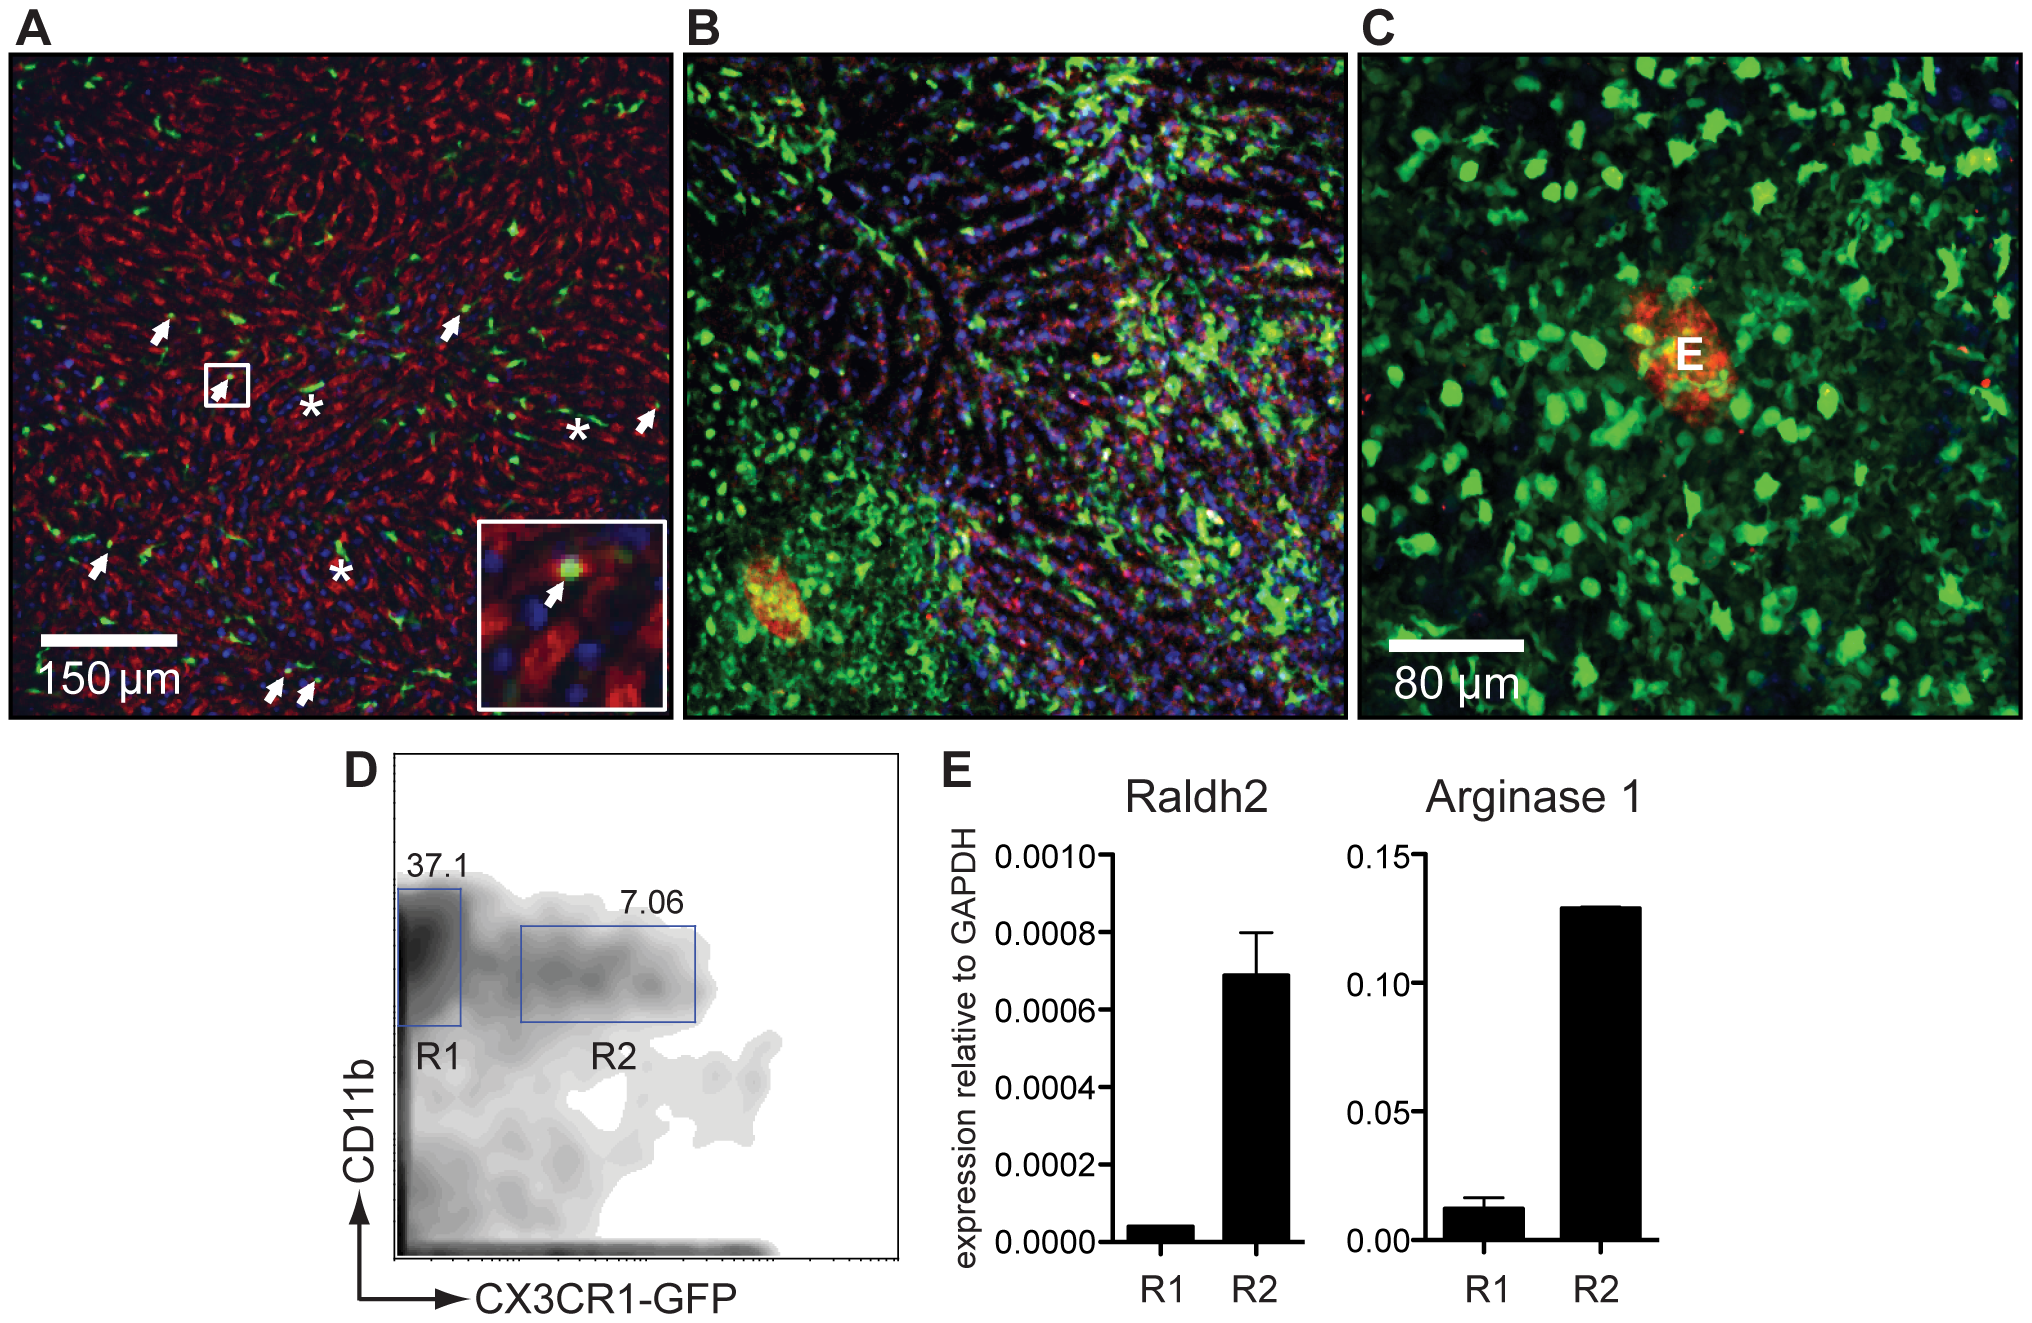 CX<sub>3</sub>CR1-GFP<sup>+</sup> AAMφ in the liver granulomas of <i>S. mansoni</i> infected mice express Raldh2.